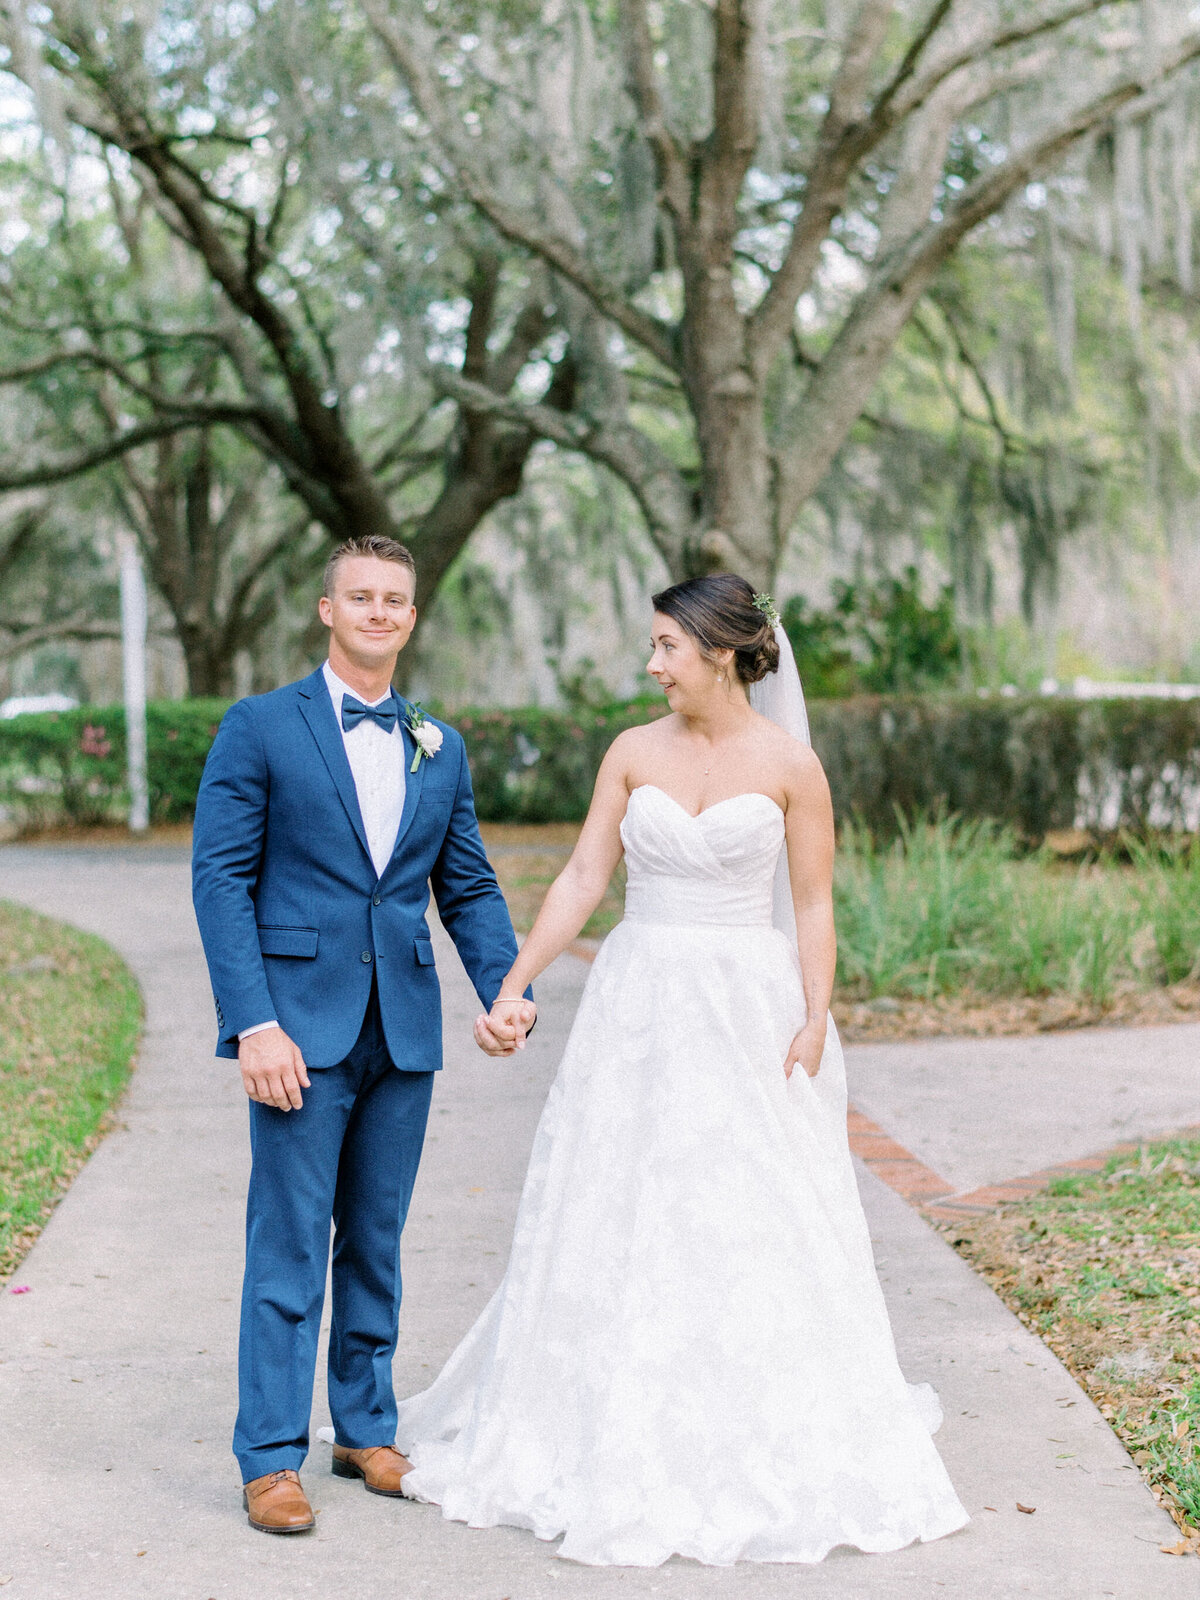 orlando-florida-wedding-photography-jessi-clare99